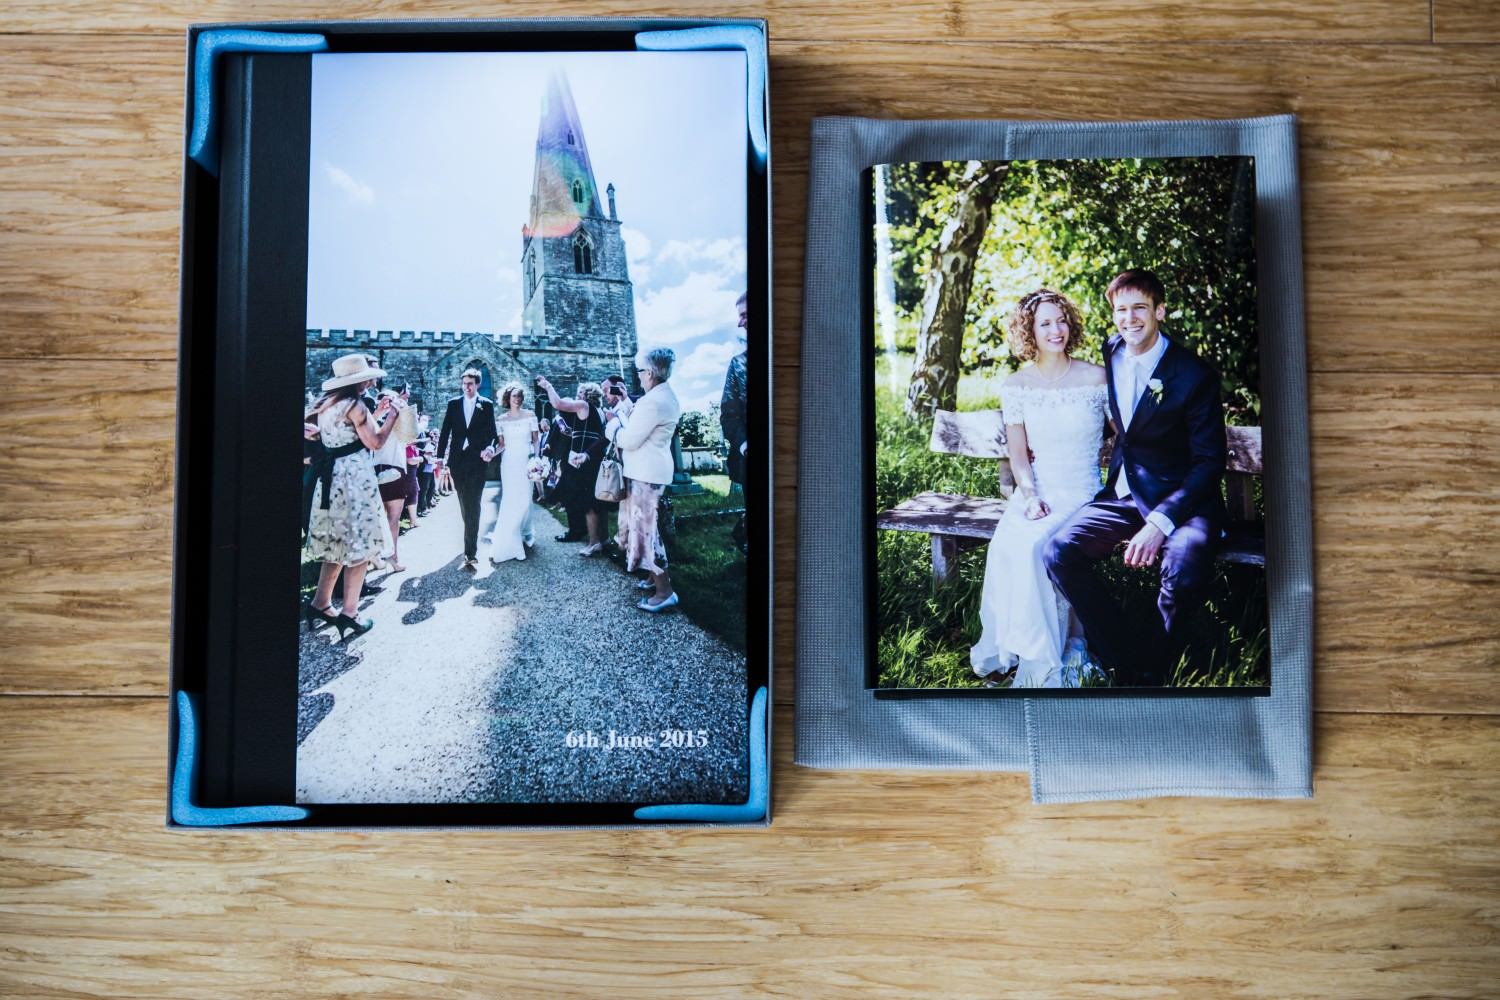 wedding album and parent's copy